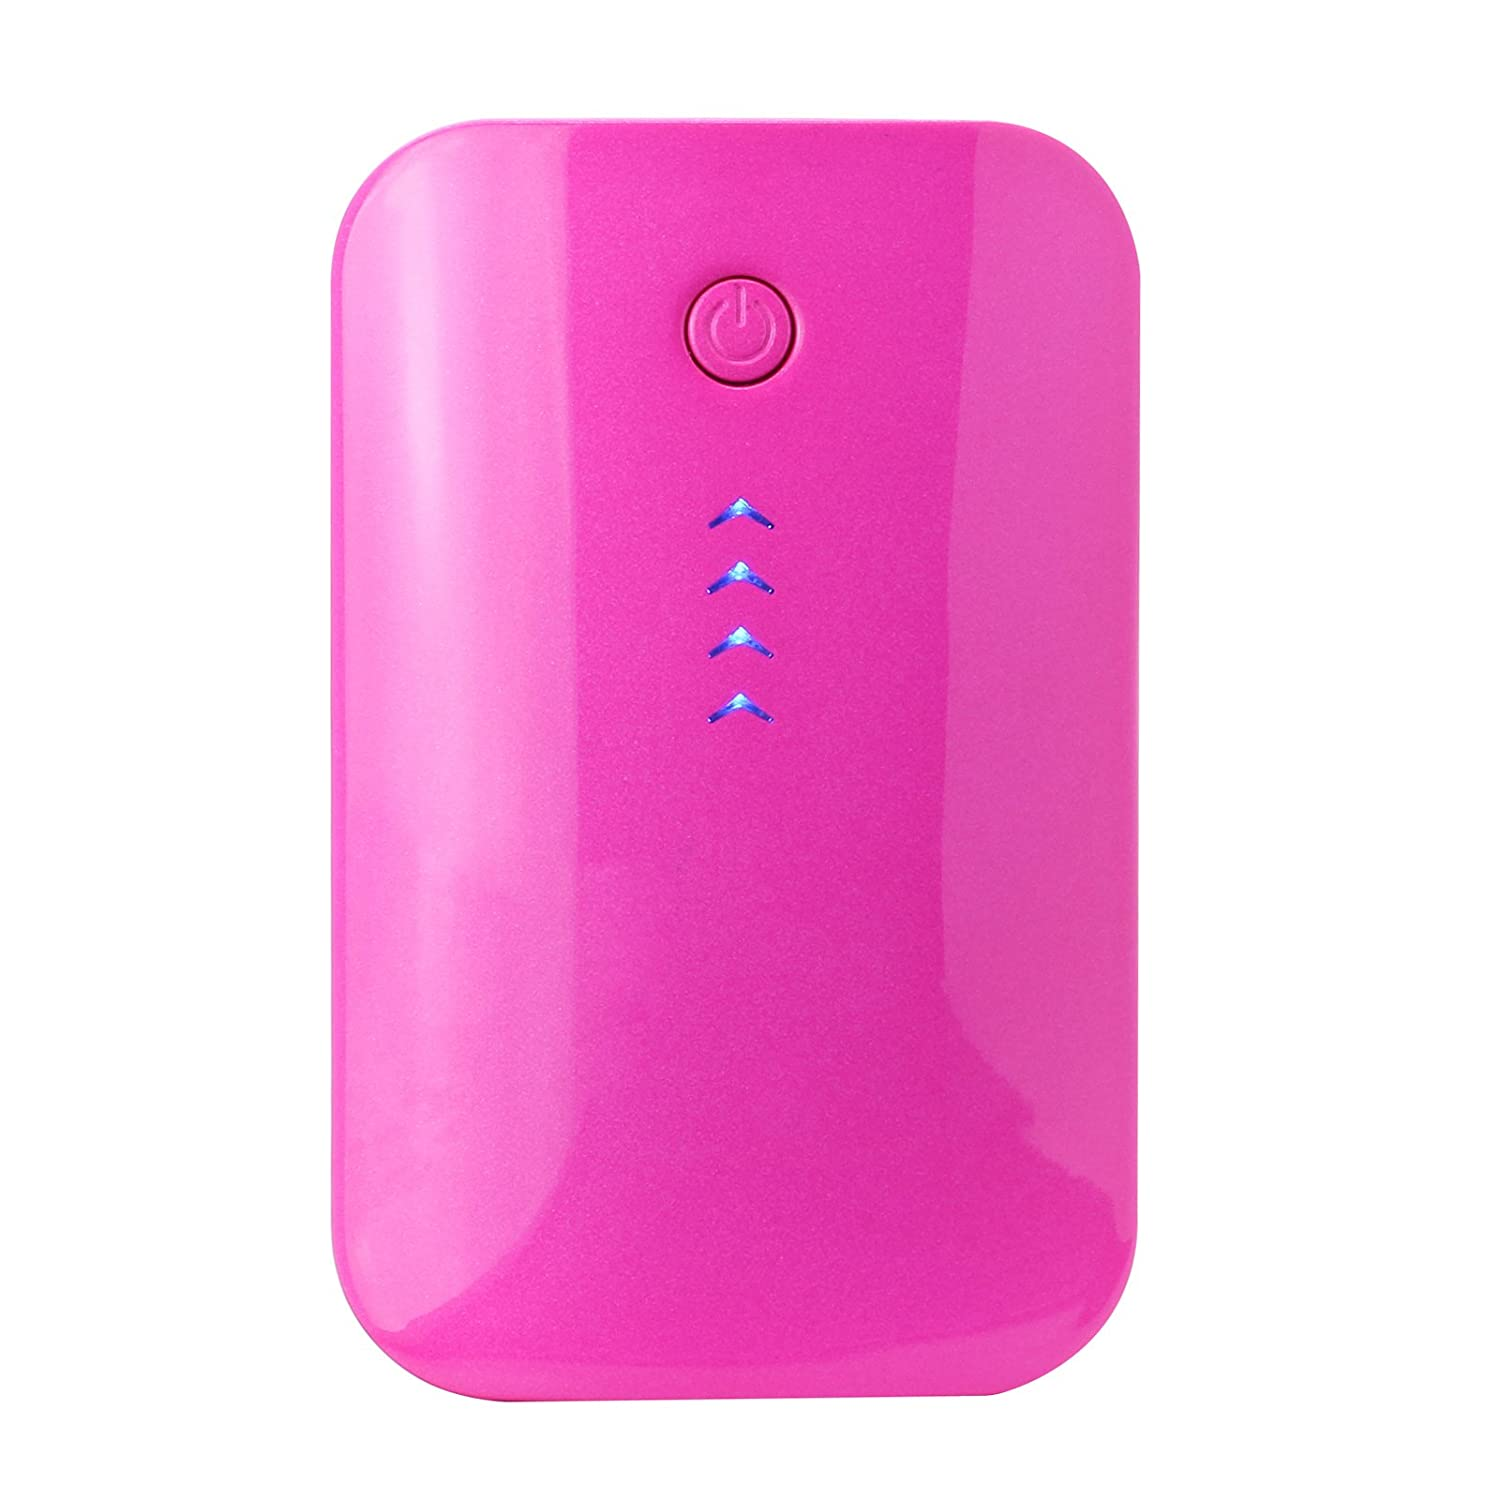 Good Time® Mini 2600mah External Battery Pack Compact Lipstick Size USB Universal Portable Power Bank Charger for Iphone 5 4s 4 3gs, Ipod, Samsung Galaxy S4 S3 Minii8190, S3 I9300, S Ii I9100, S I9000, Galaxy Nexus, Galaxy Note 2,blackberry,nokia and S universal portable 2600mah power bank for ipad iphone ipod mp3 mp4 more black